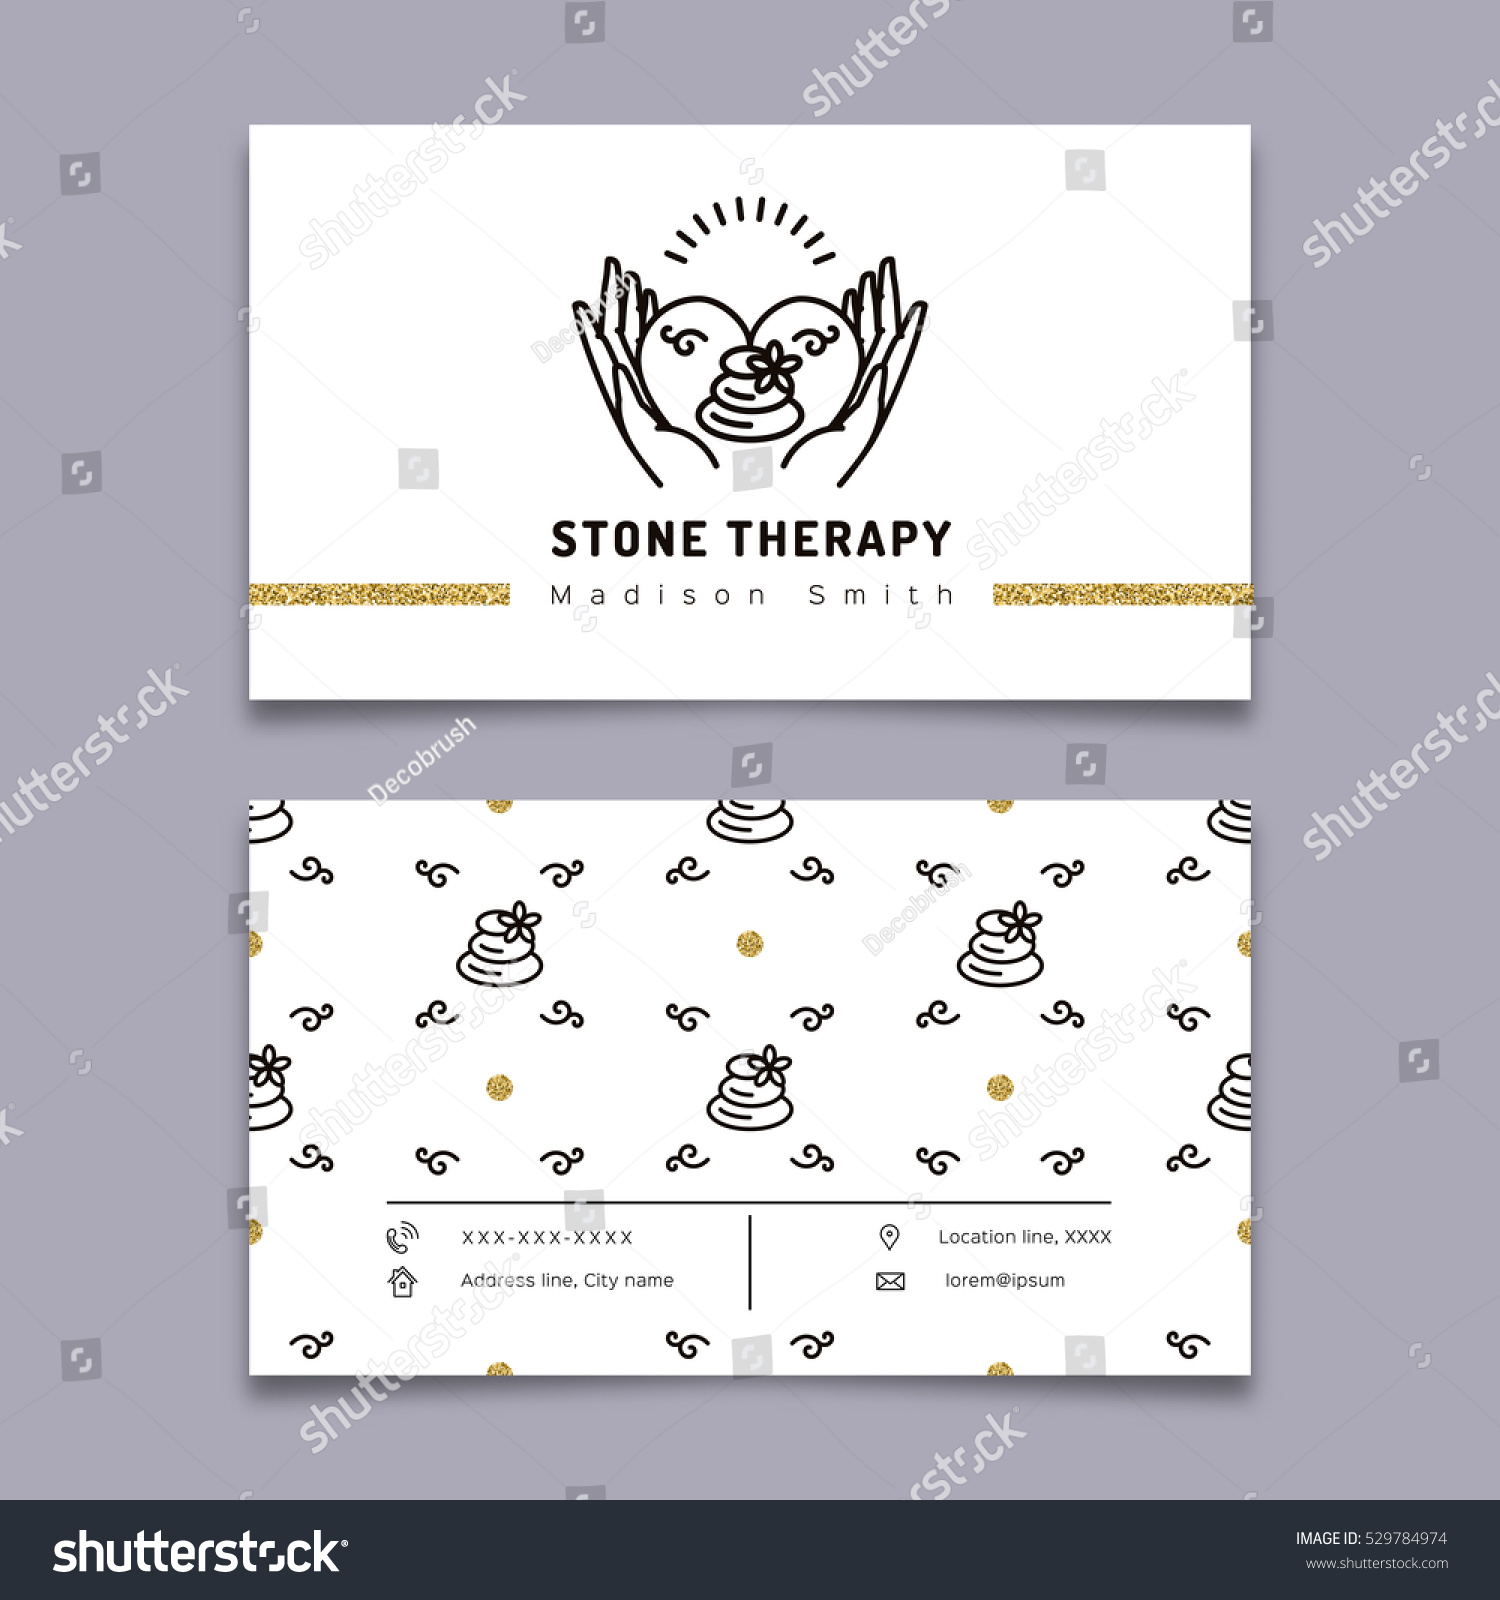 Vector Stone Therapy Business Card Template Stock Vector Royalty